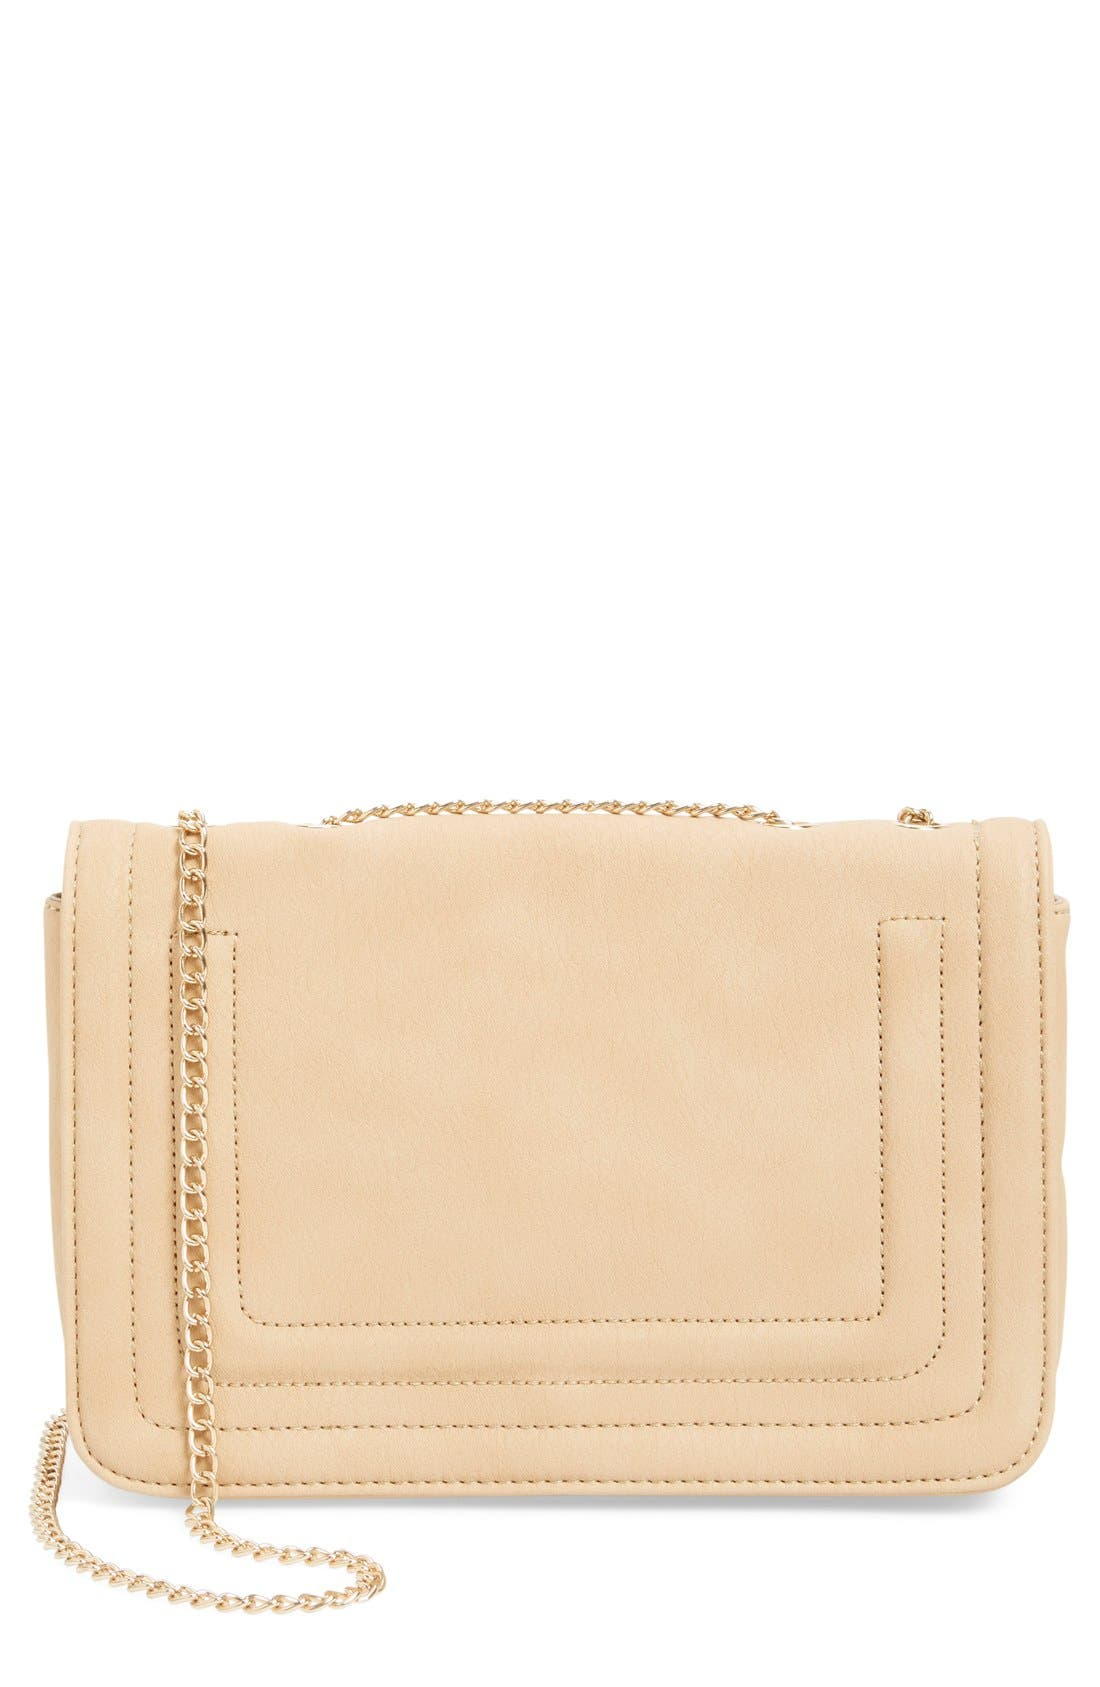 Quilted Faux Leather Crossbody Bag,                             Main thumbnail 1, color,                             Nude